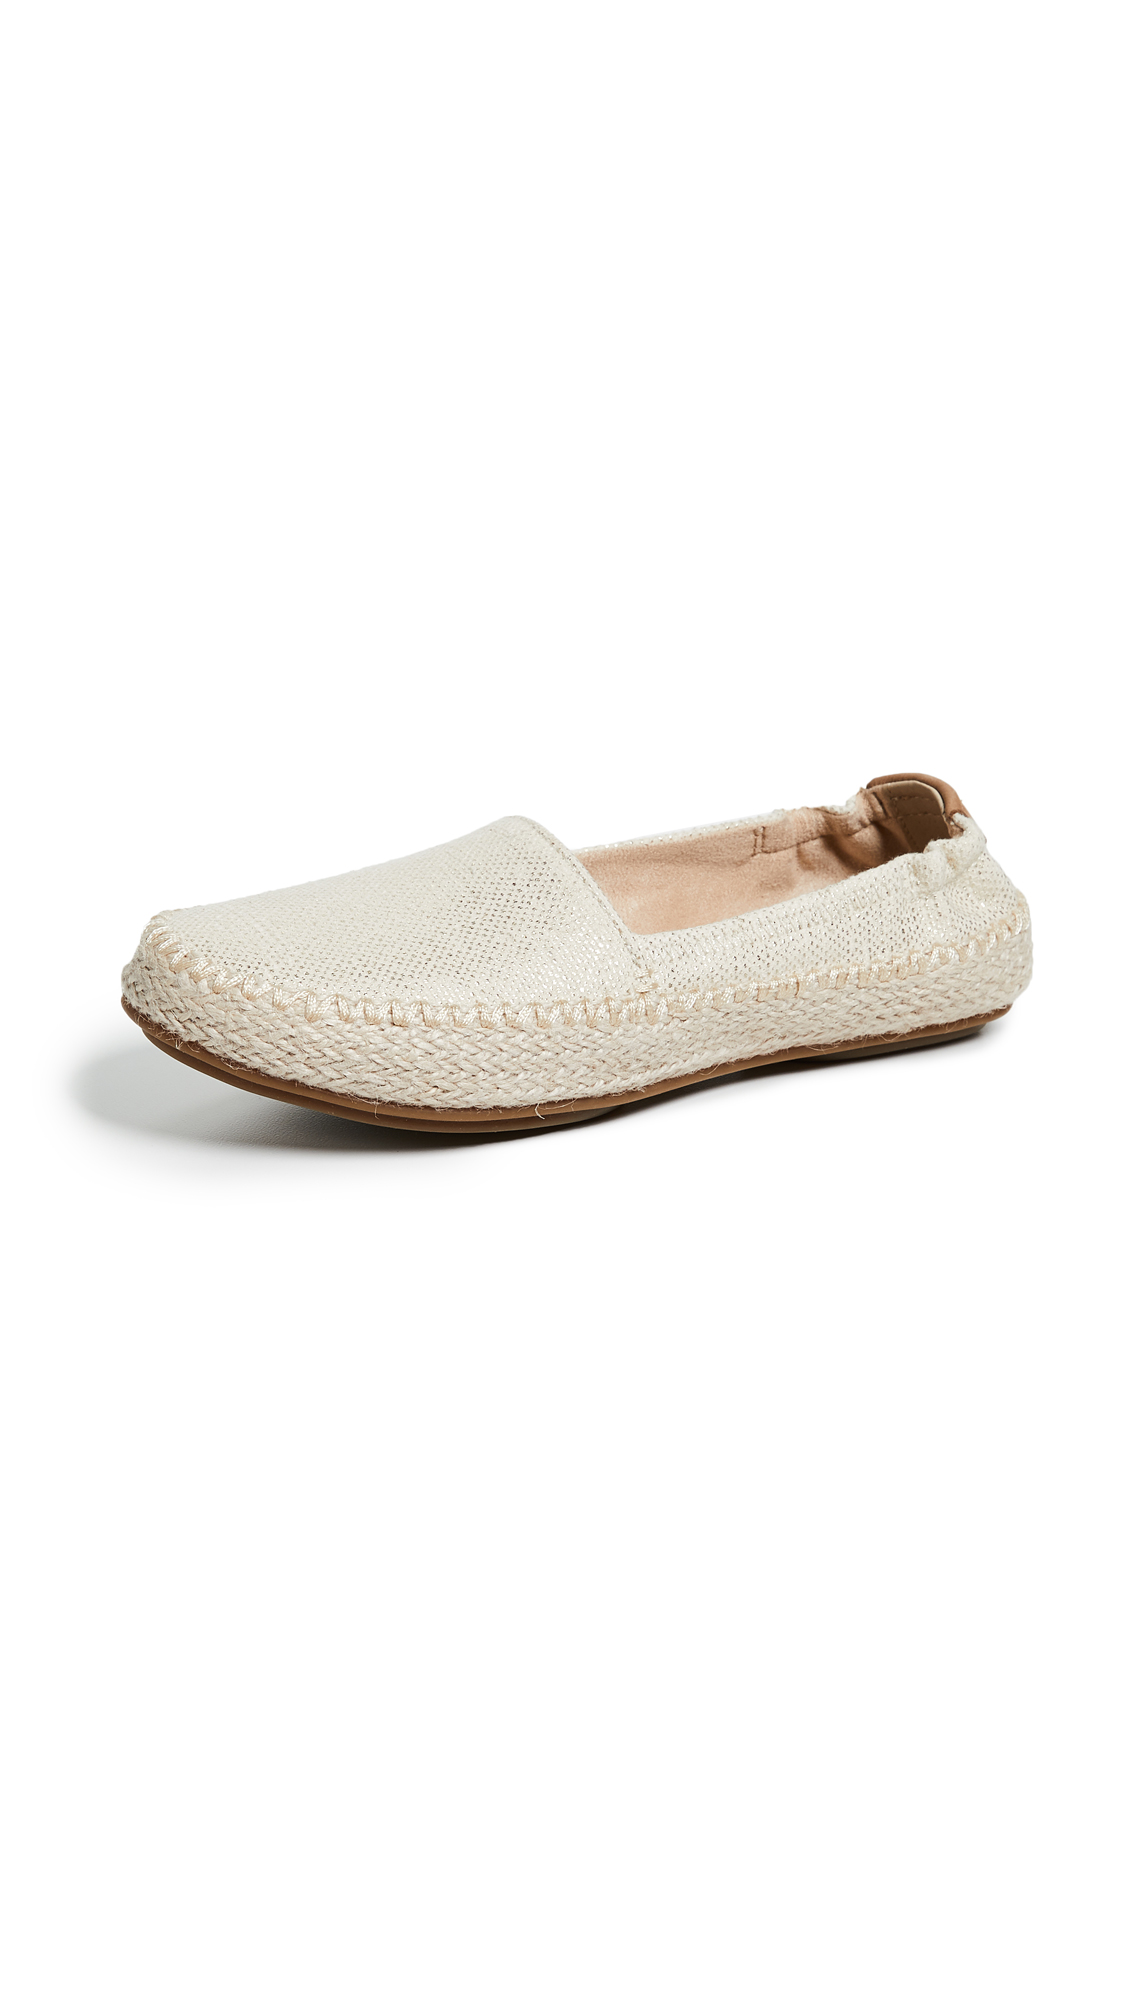 Sperry Sunset Ella Canvas Flats - Linen